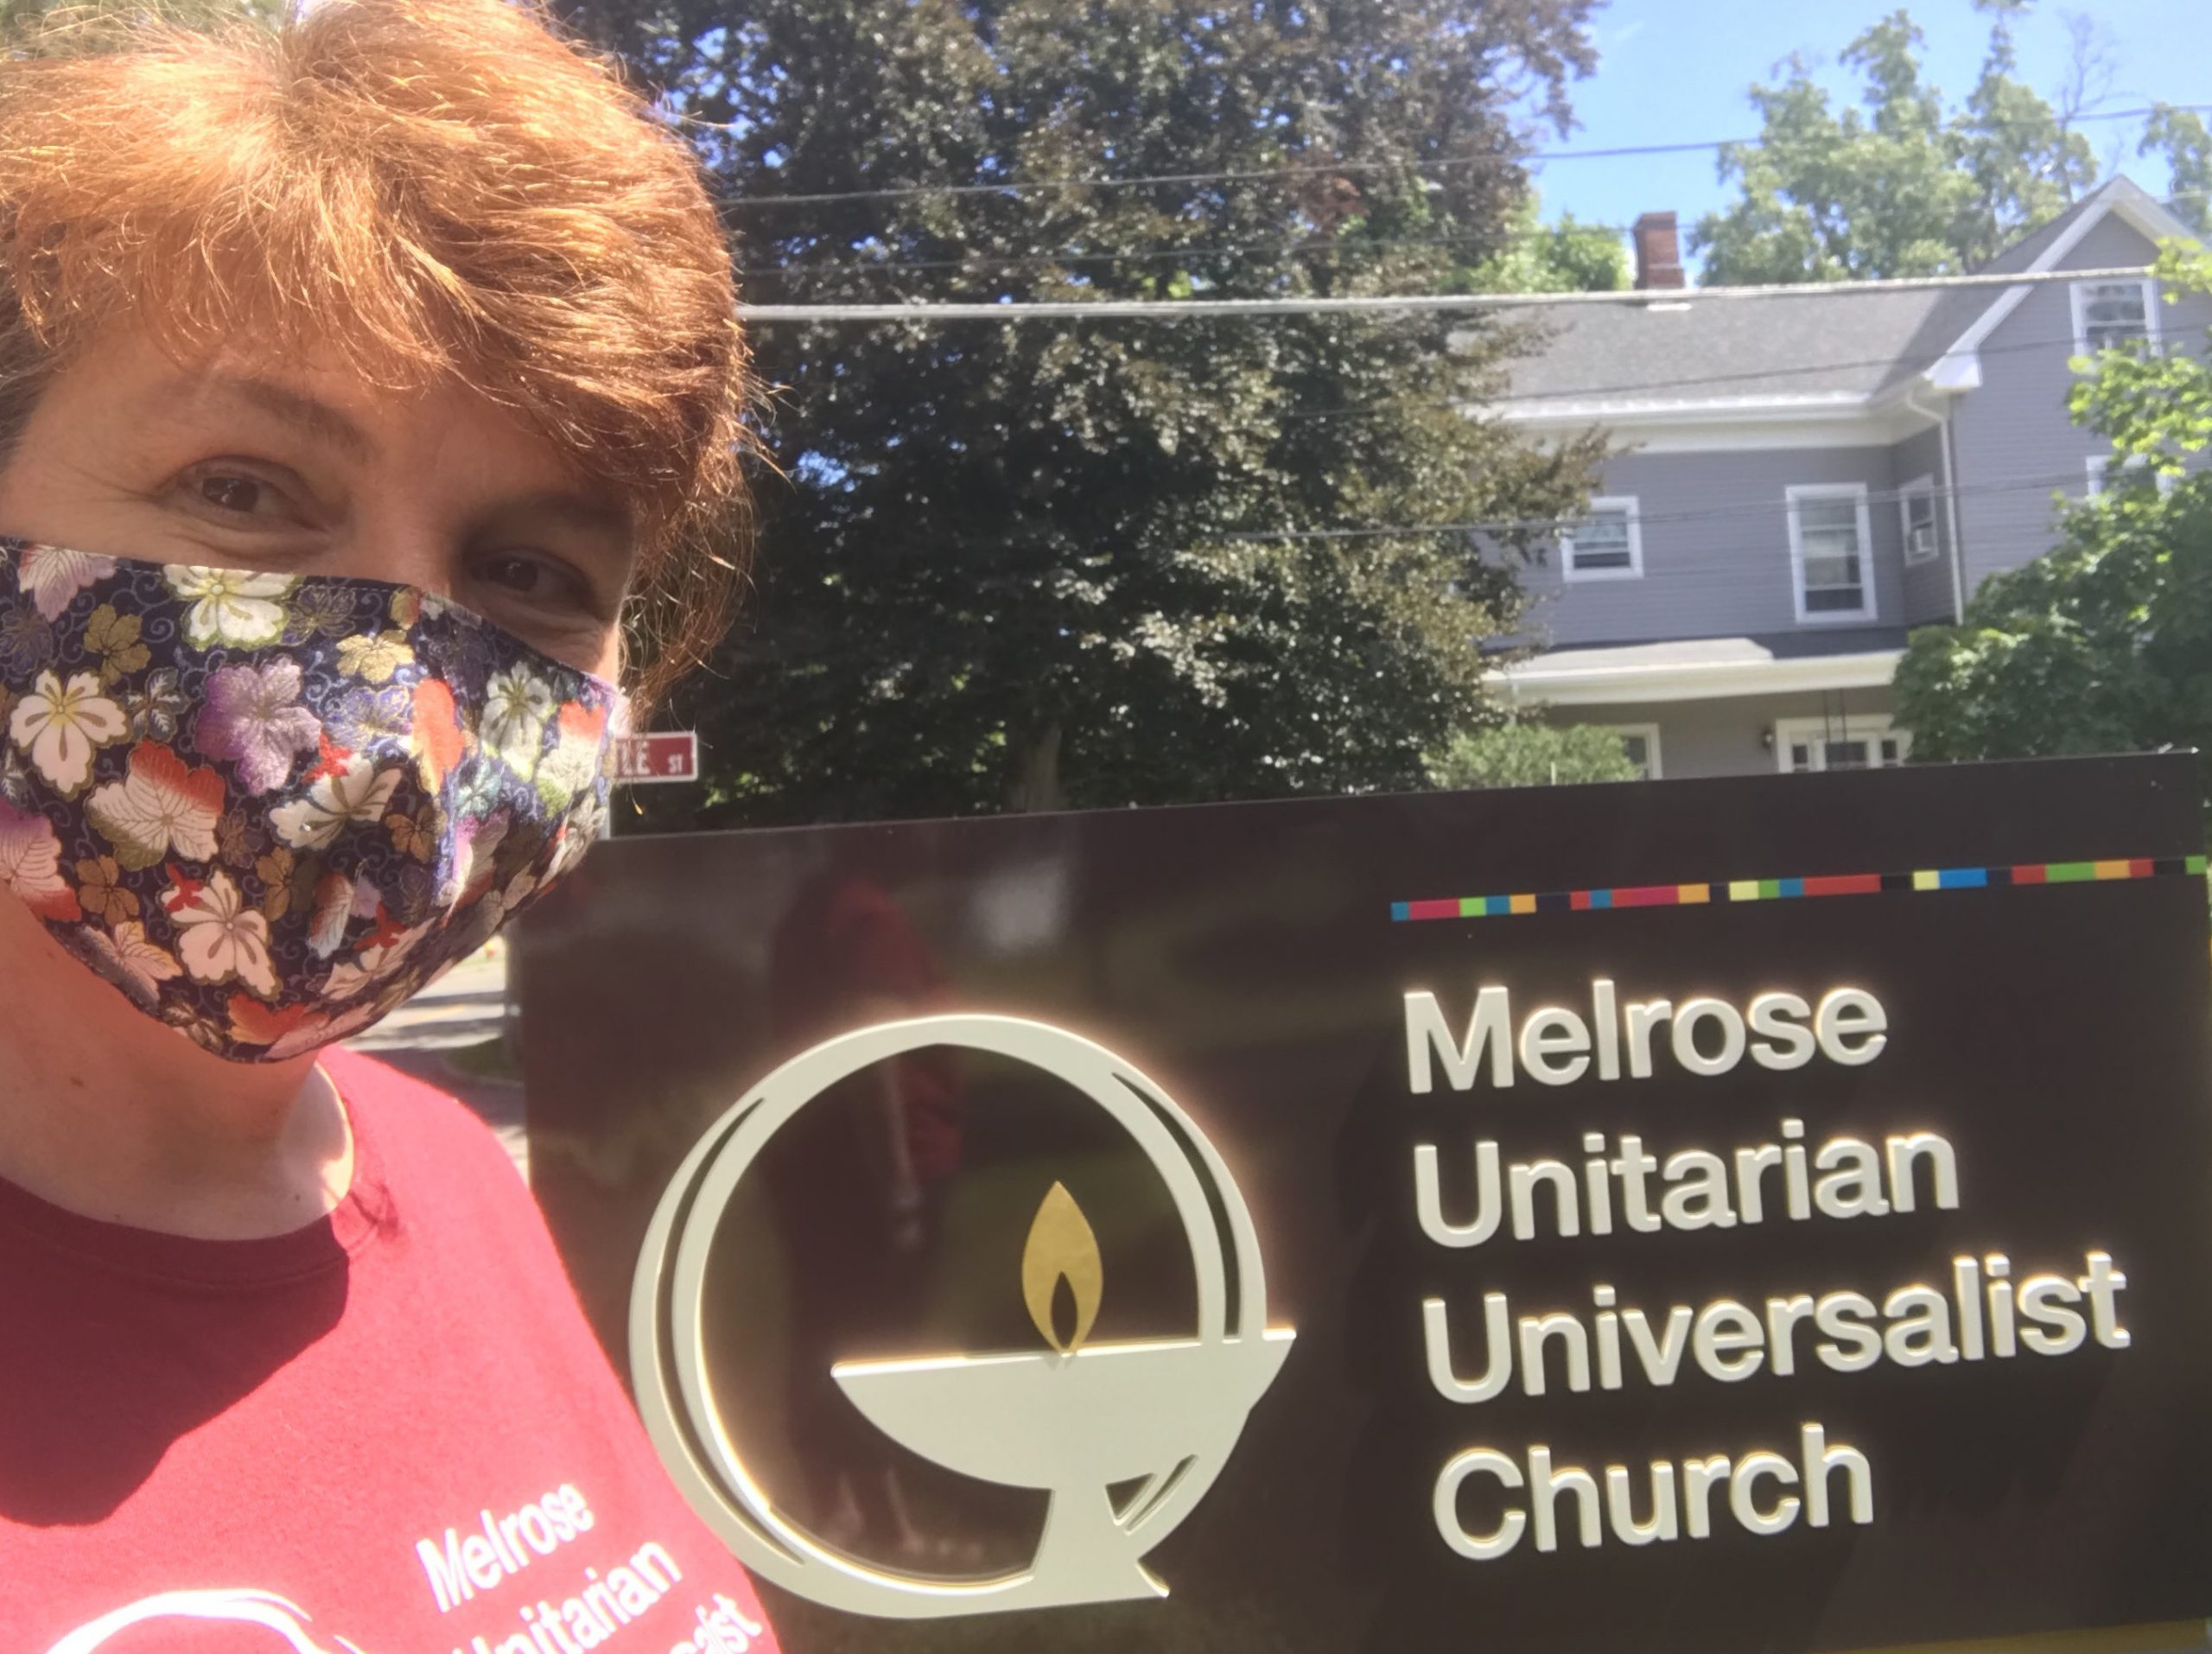 Rev. Susanne's Outdoor Office Hours: Wednesdays 5-7pm